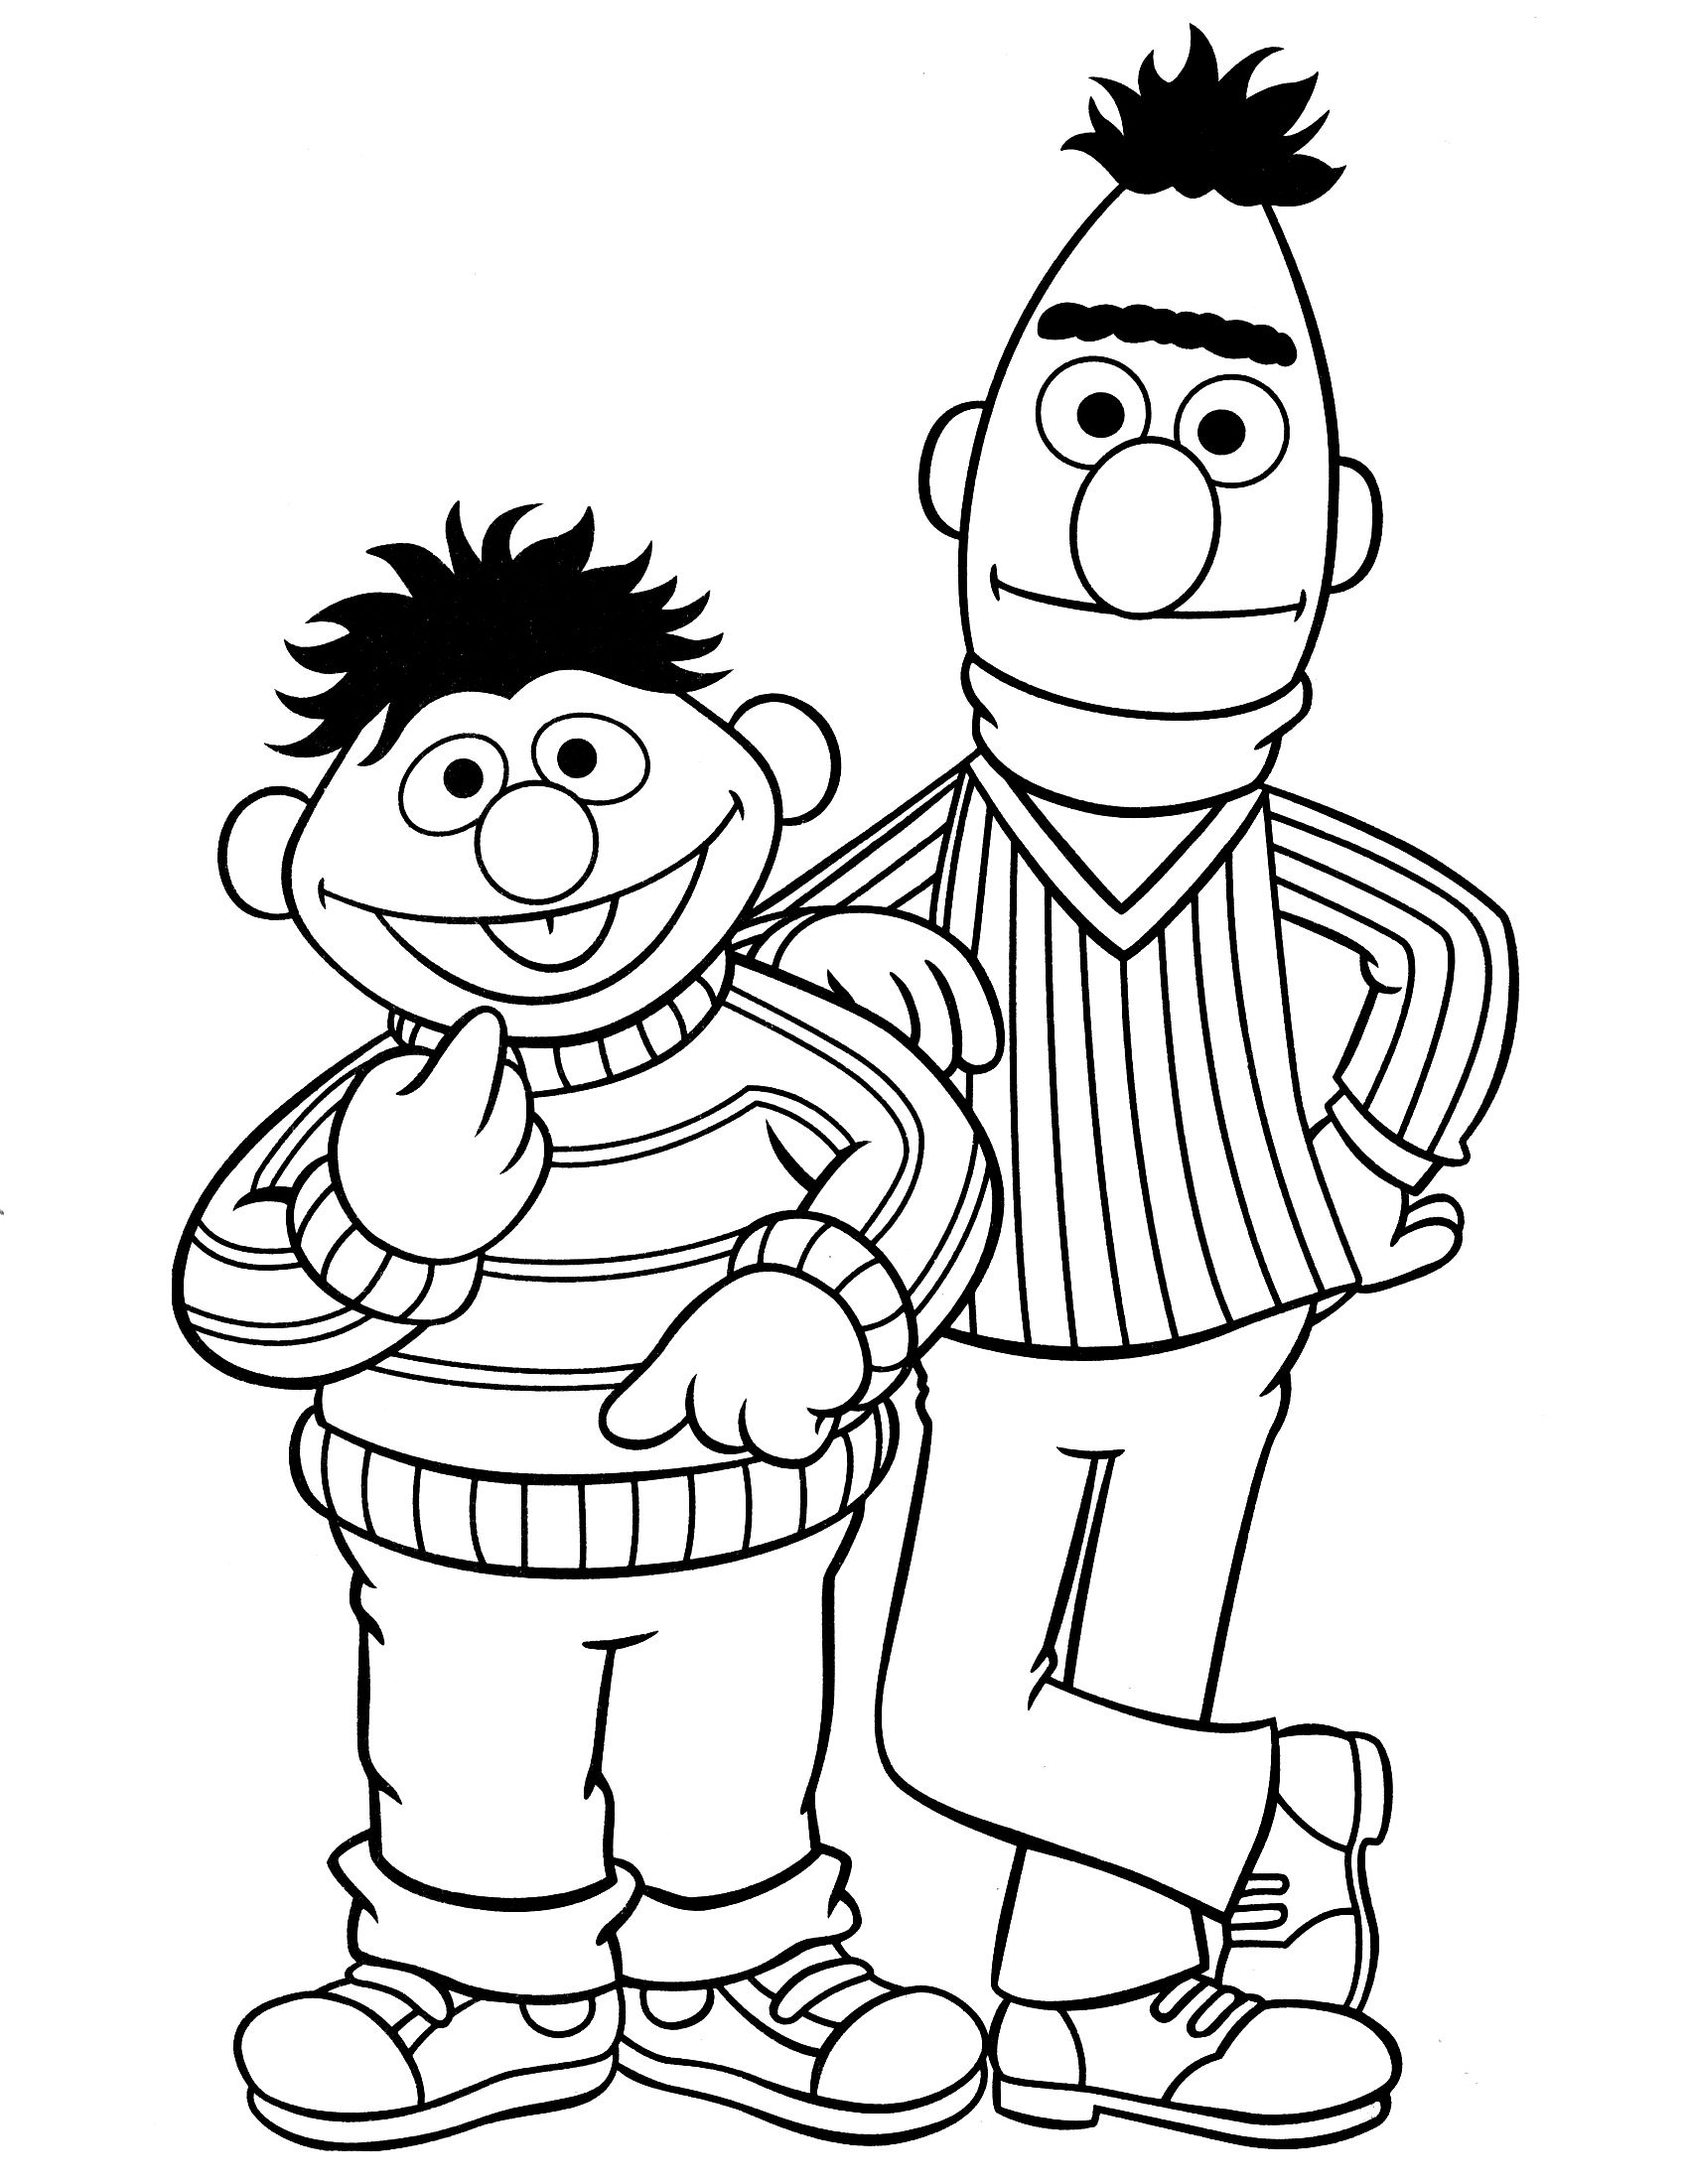 Here we provide some black and white sesame street coloring pages ...